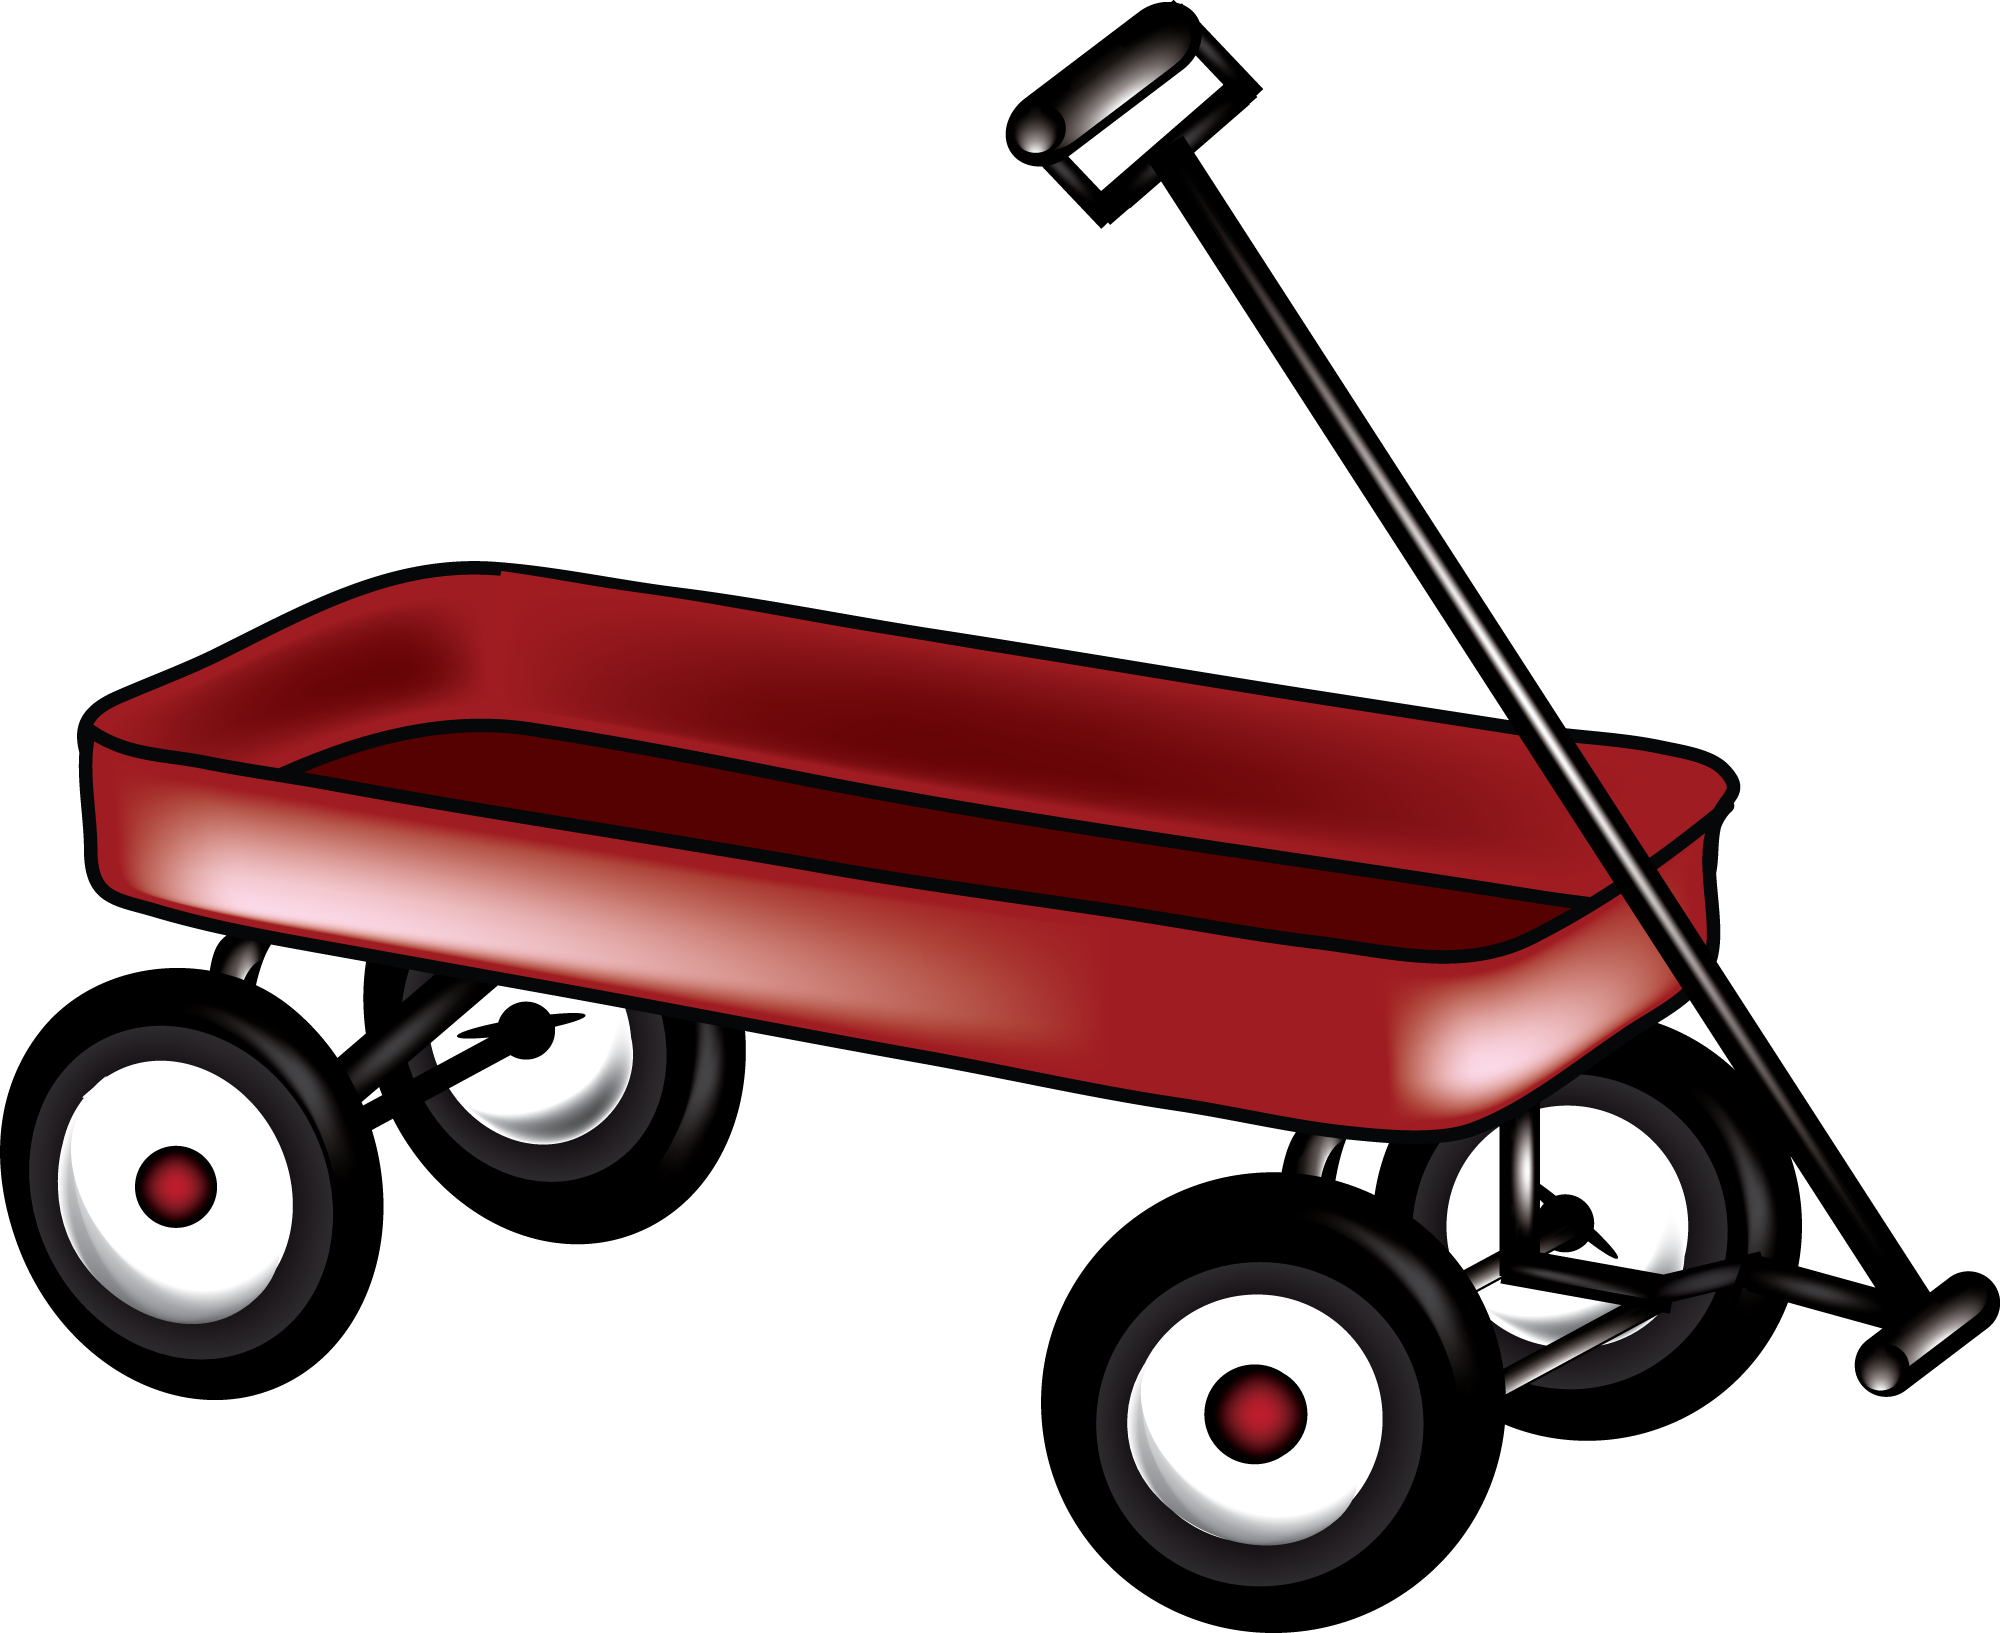 Red Wagon Pictures additionally Product together with 141933825729248697 moreover How To Build A Wooden Wagon For Kids besides 45836886. on toy radio flyer wagons